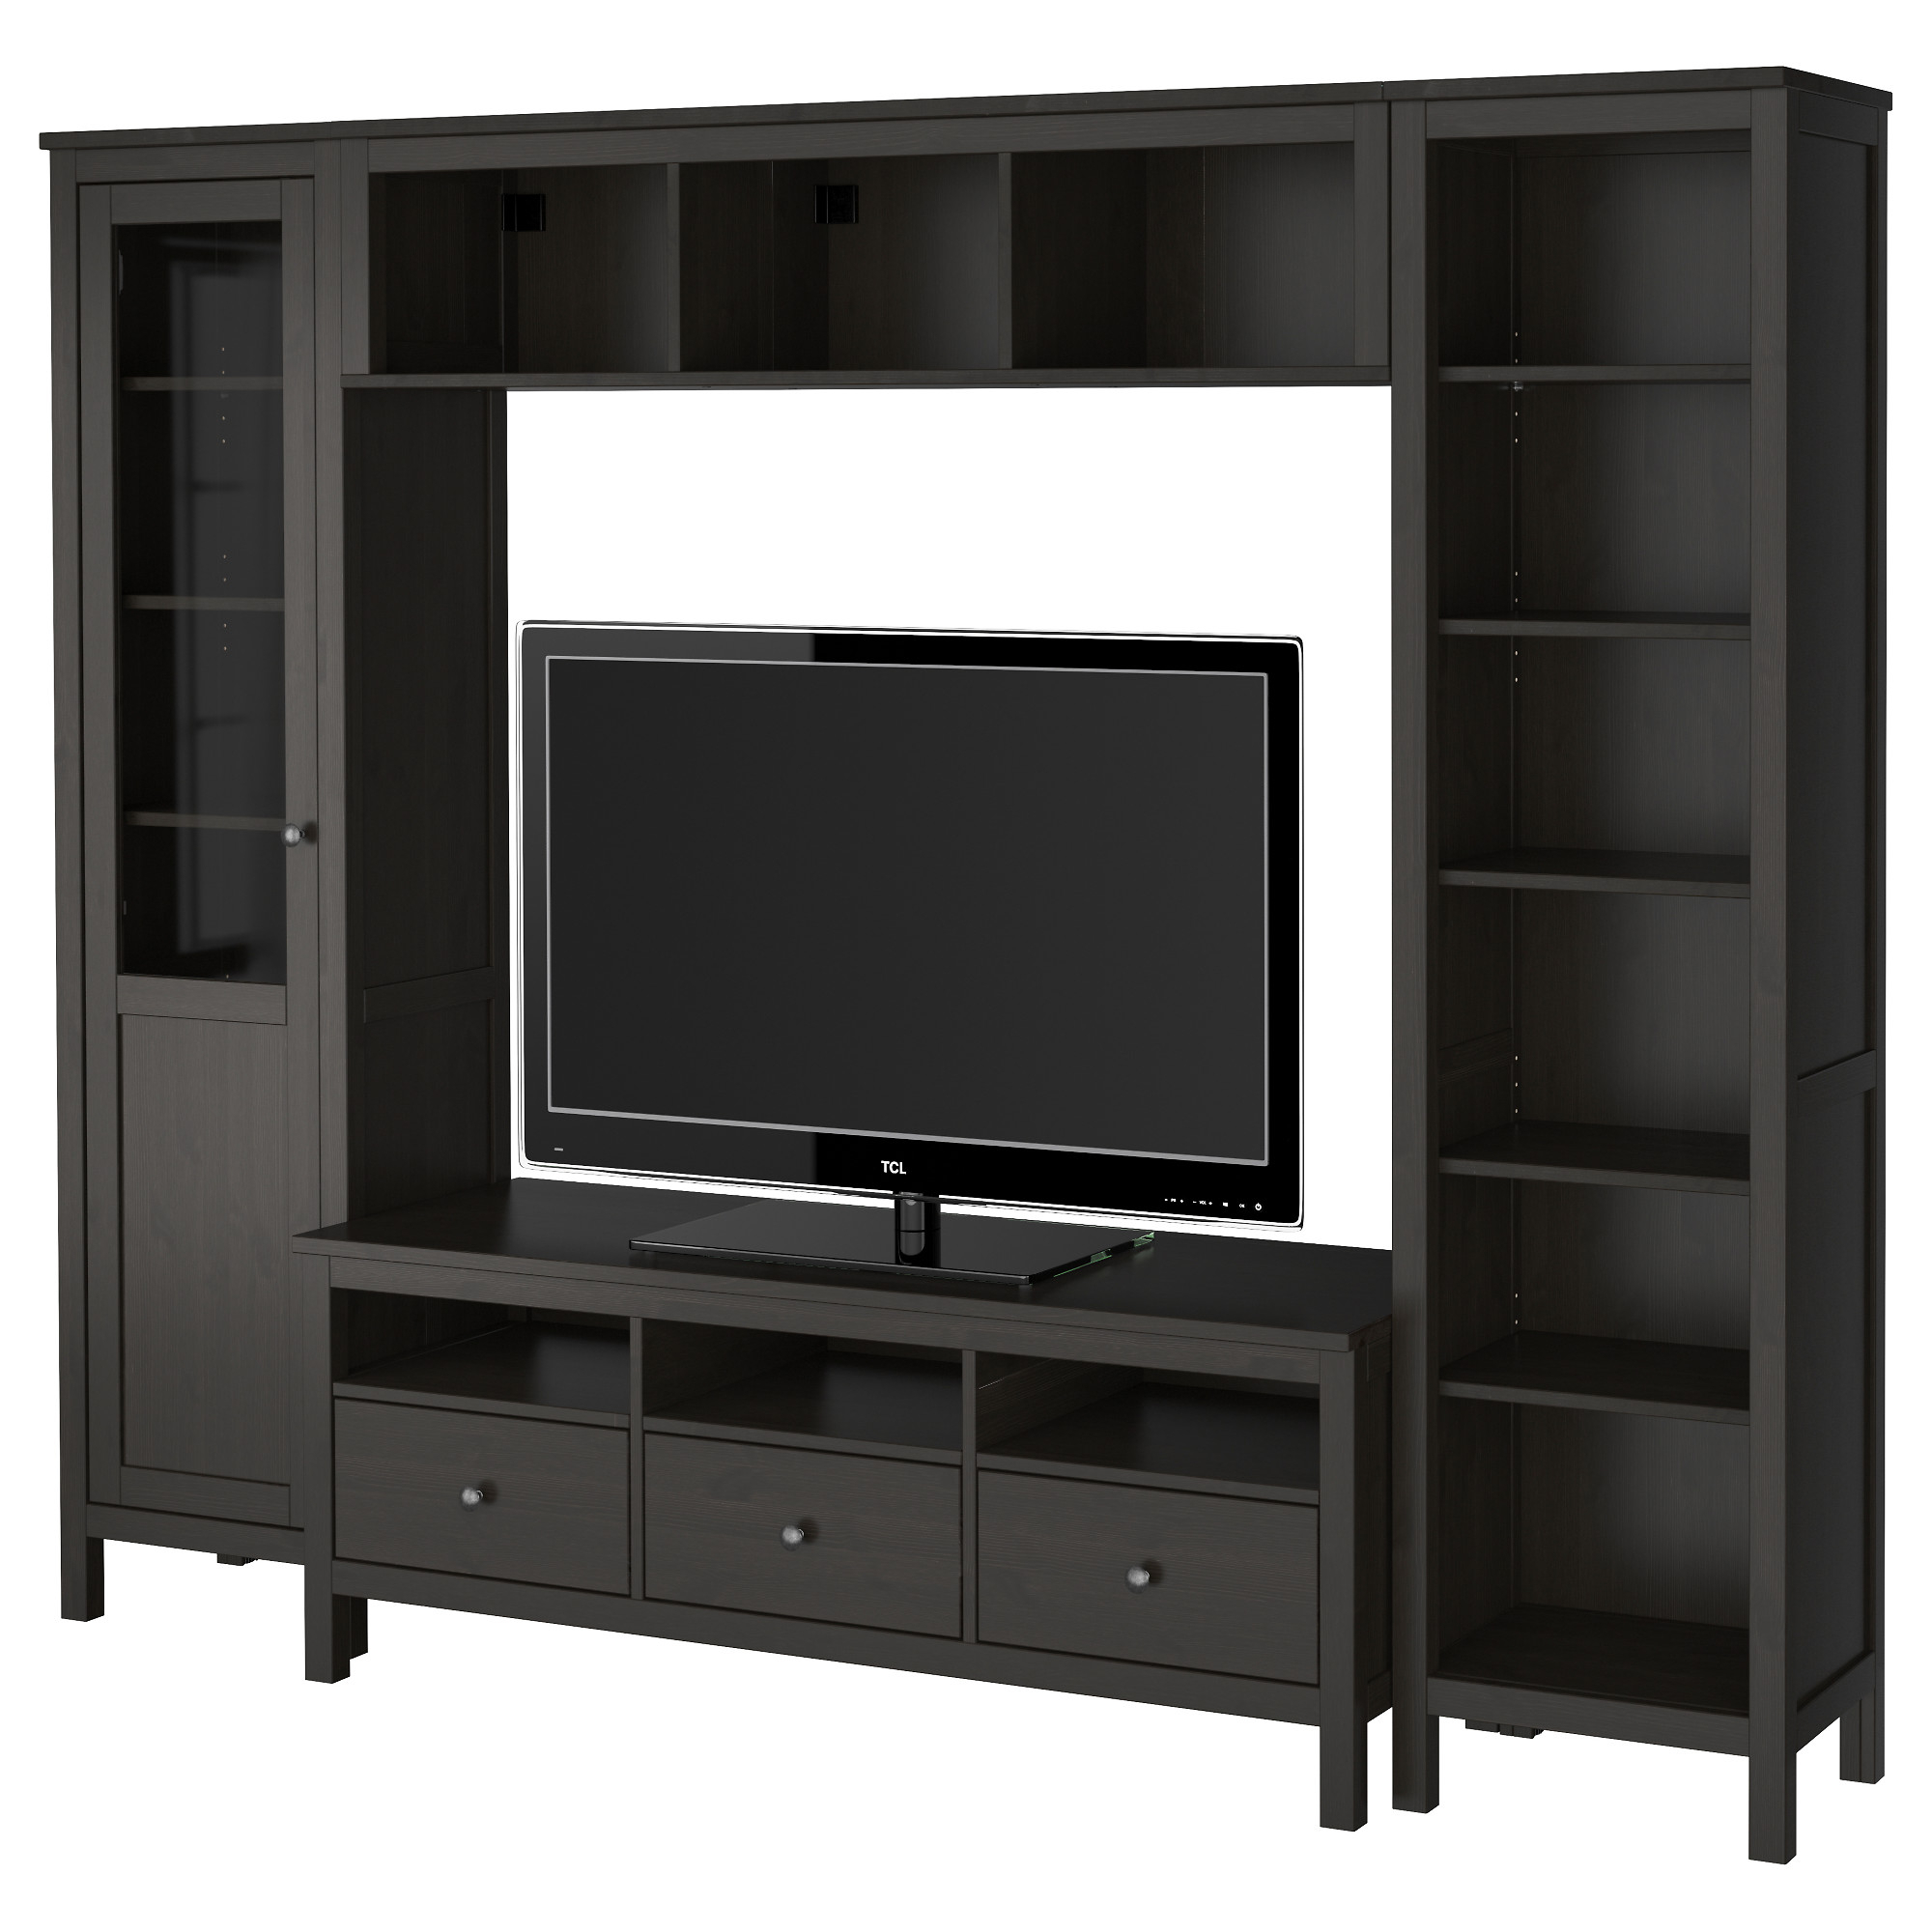 Tv Armoire For Flat Screens Ikea 70 Inch Stand 75 With Mount Best Regarding Oxford 70 Inch Tv Stands (View 13 of 30)